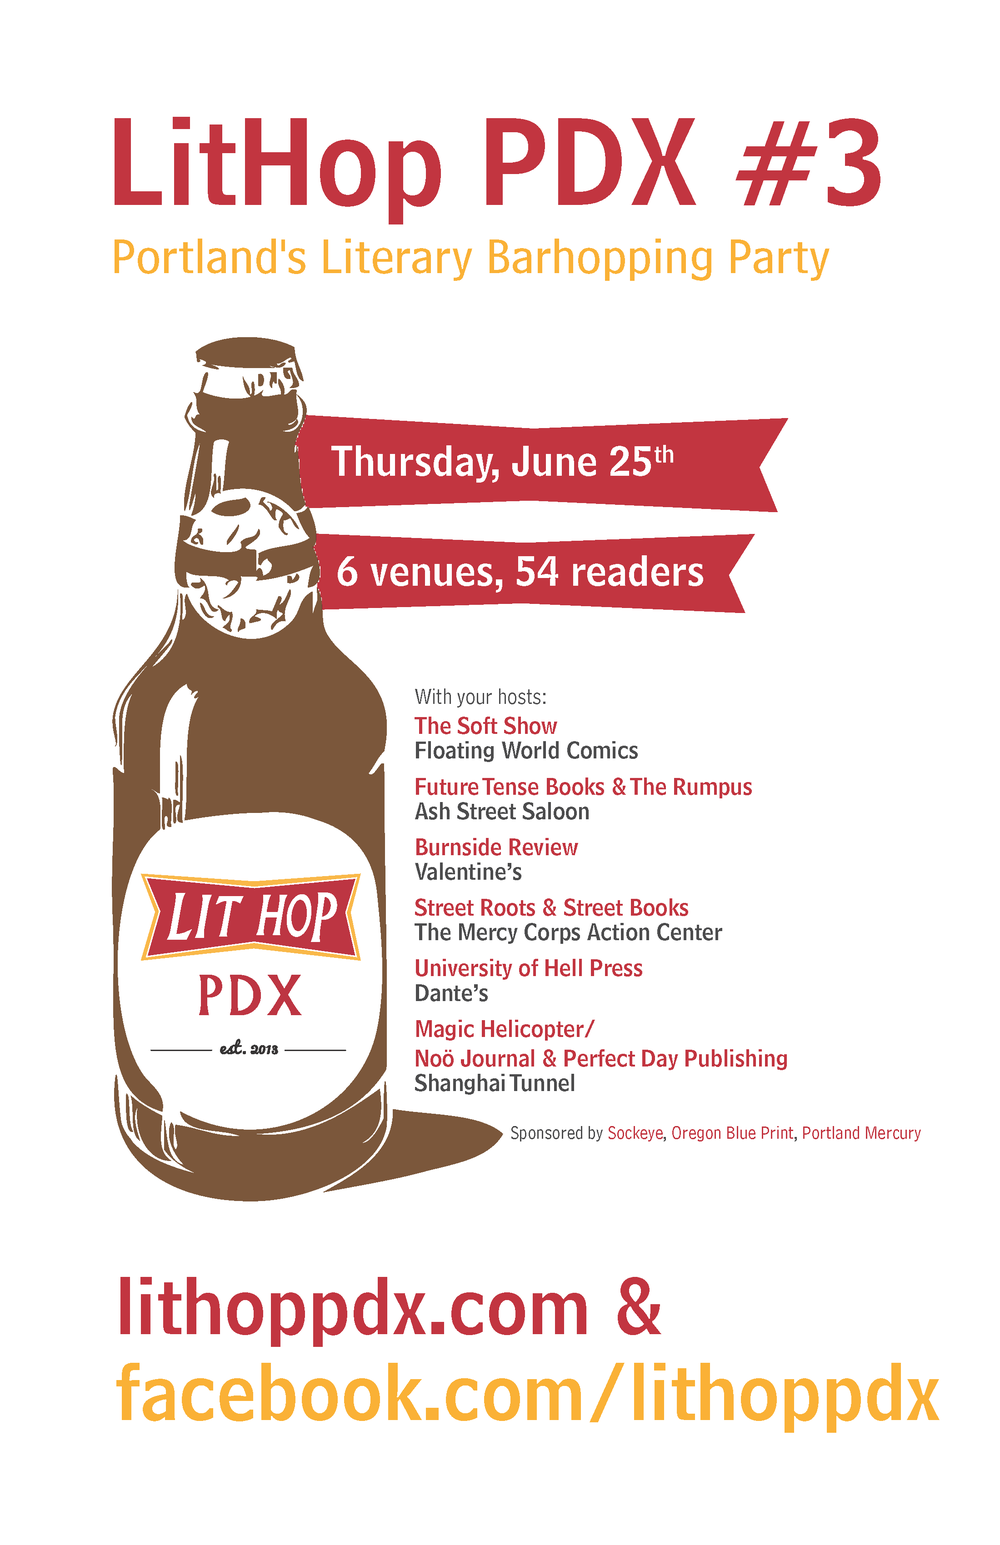 Poster for third annual LitHop PDX